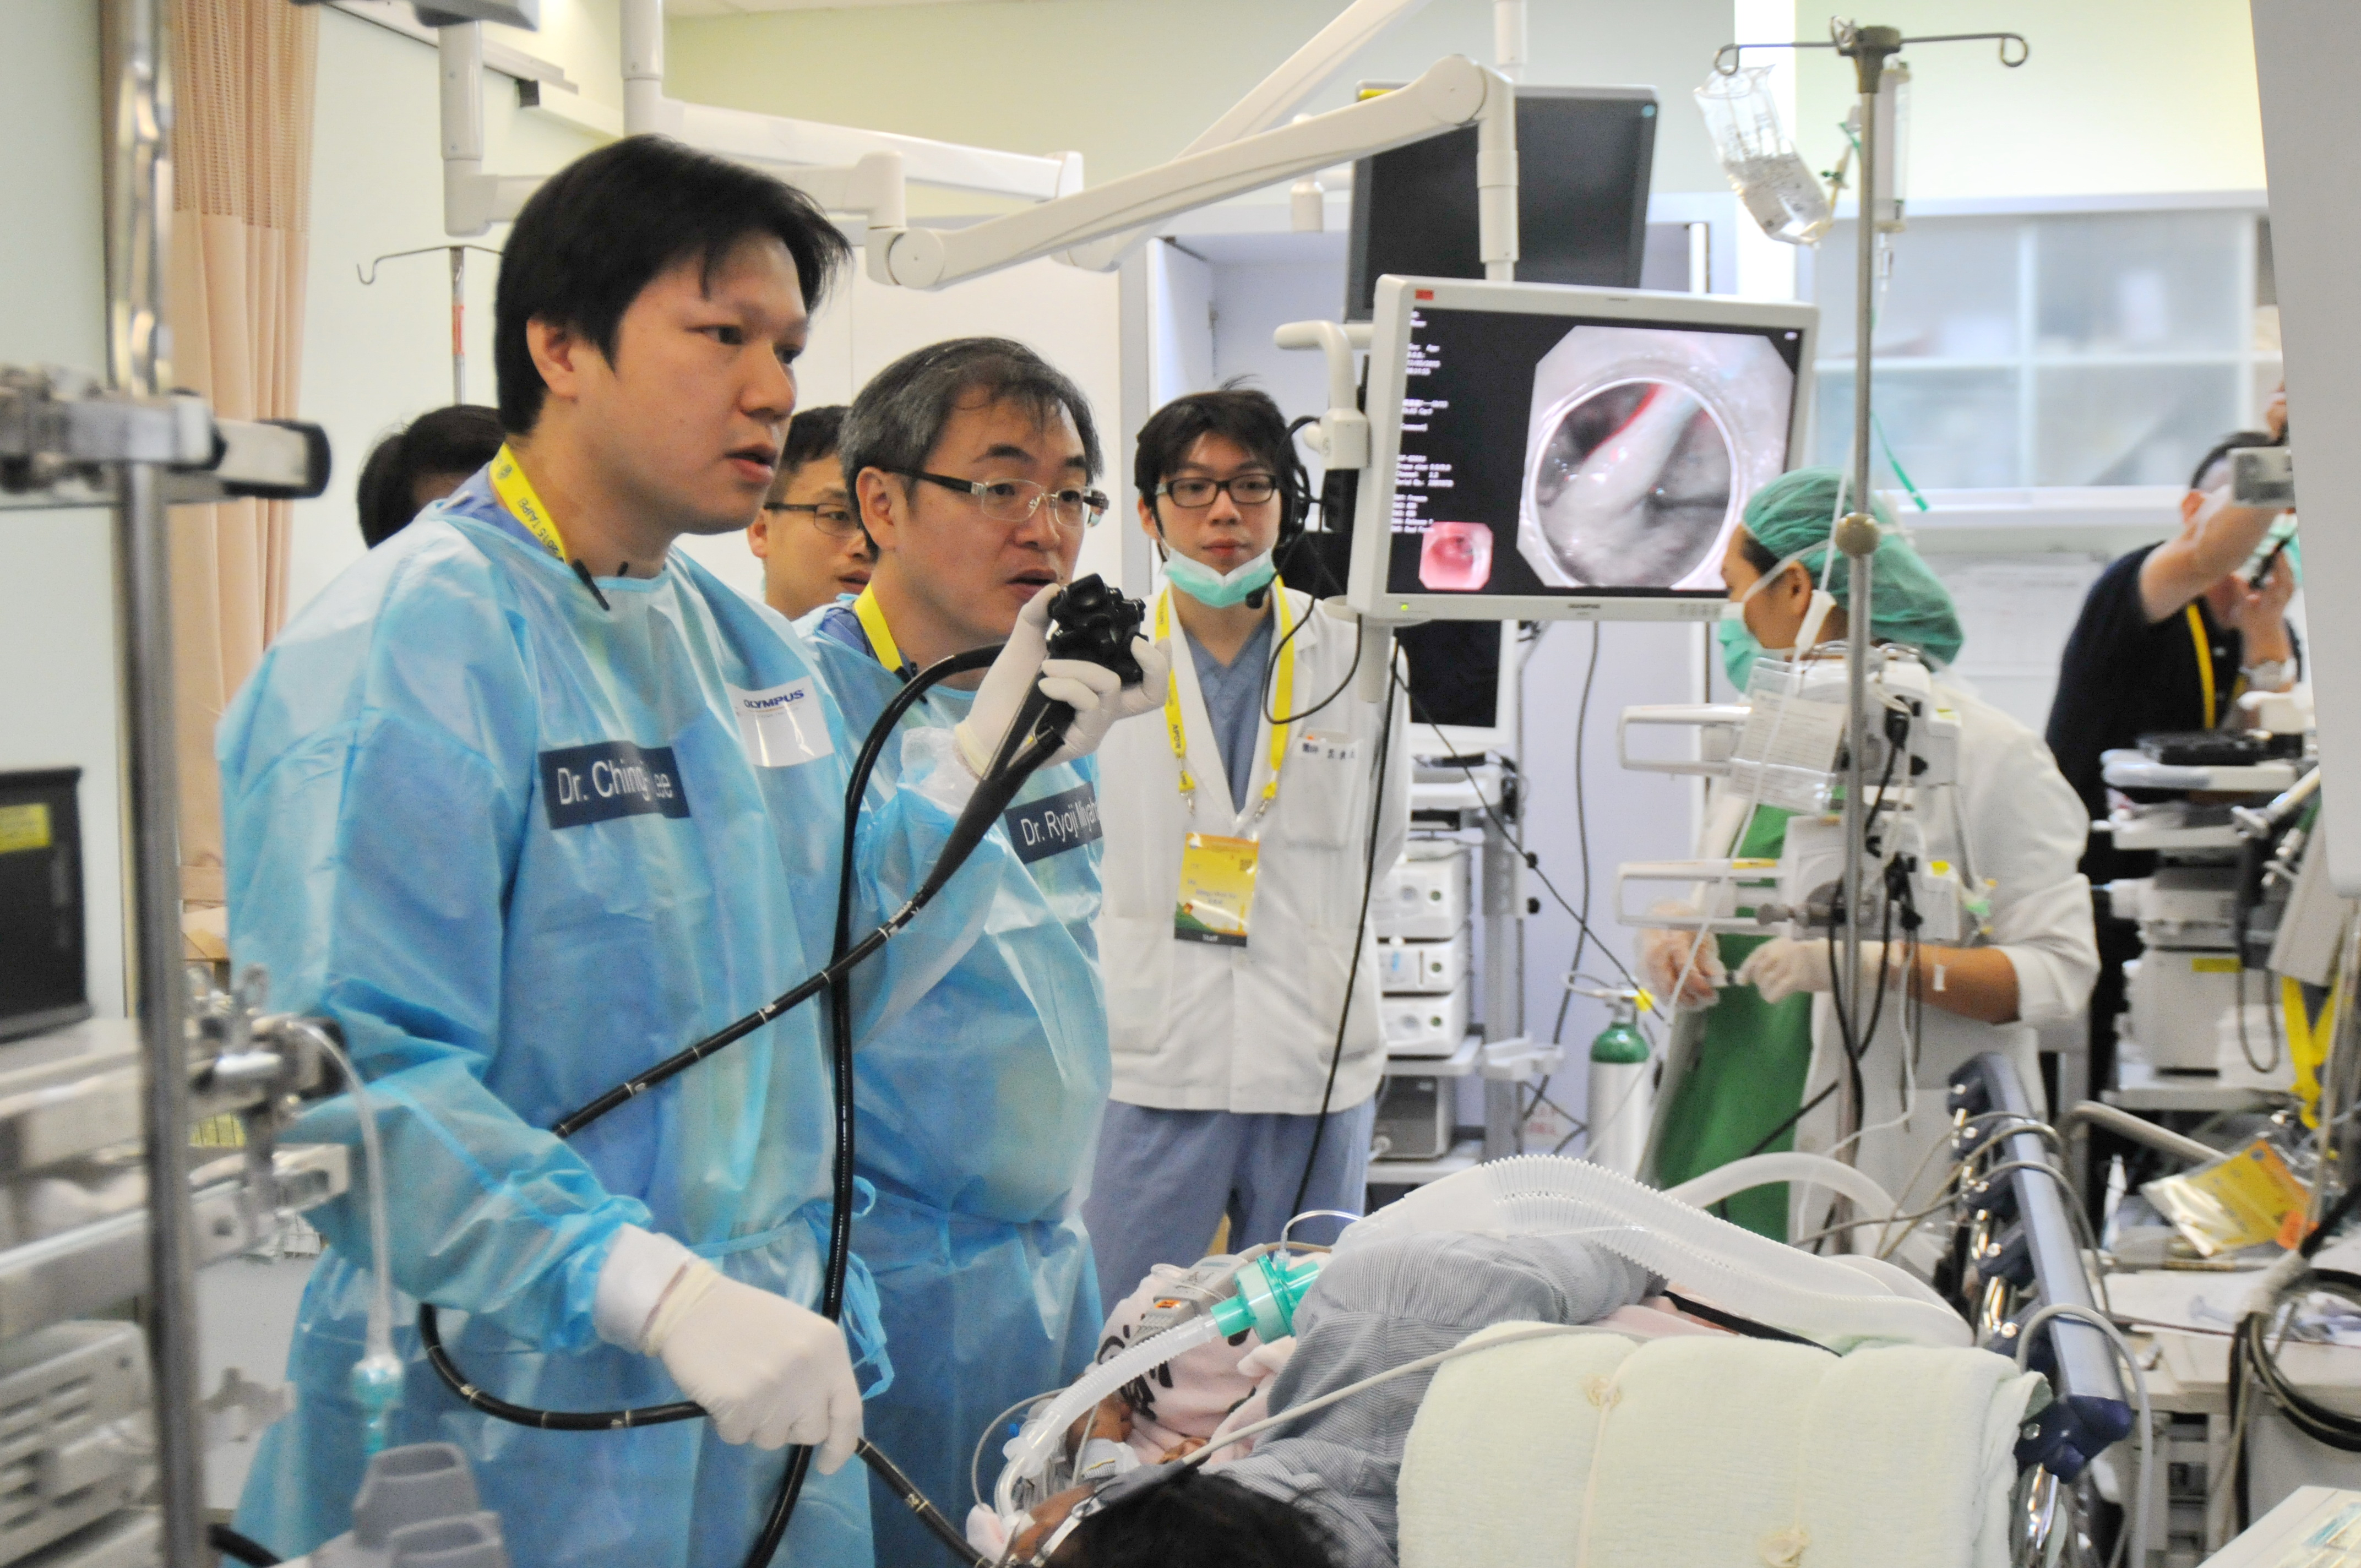 The live demonstration activity were conducted  in the Endoscopy Center of TVGH.